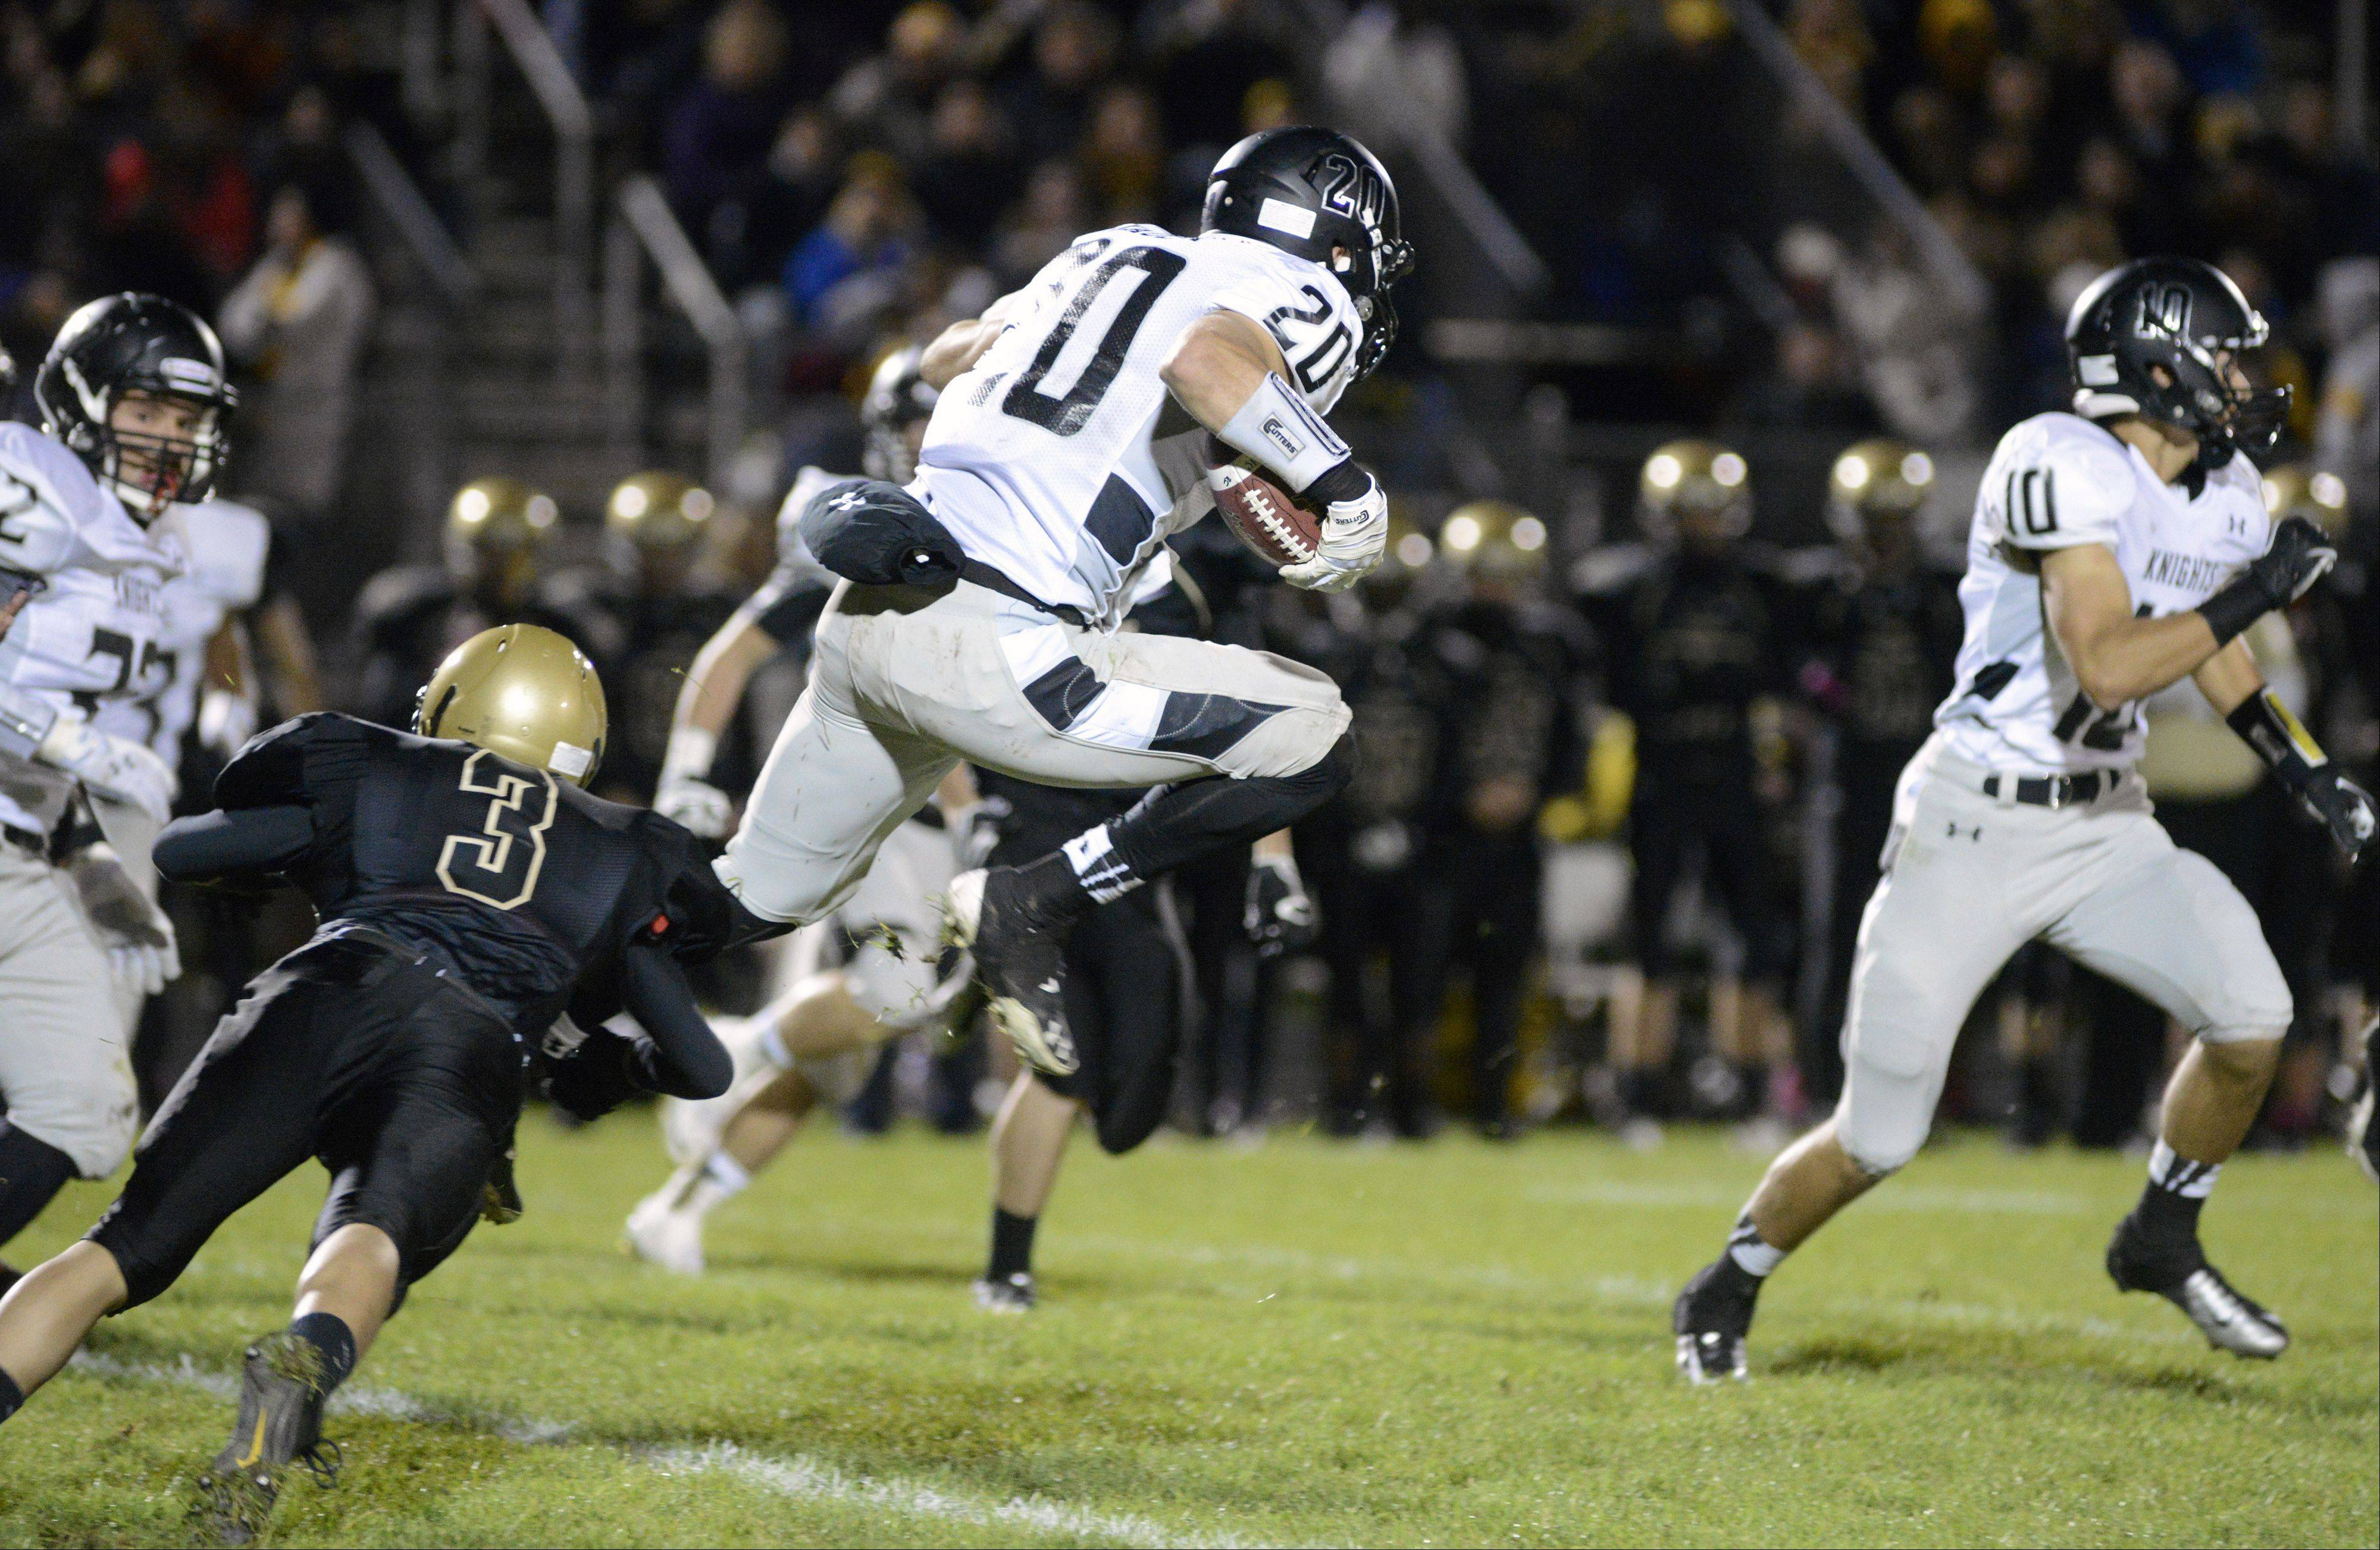 Kaneland's Dylan Nauert leaps out of the grasp of Sycamore's Edgar Garcia in the second quarter on Friday, October 18.